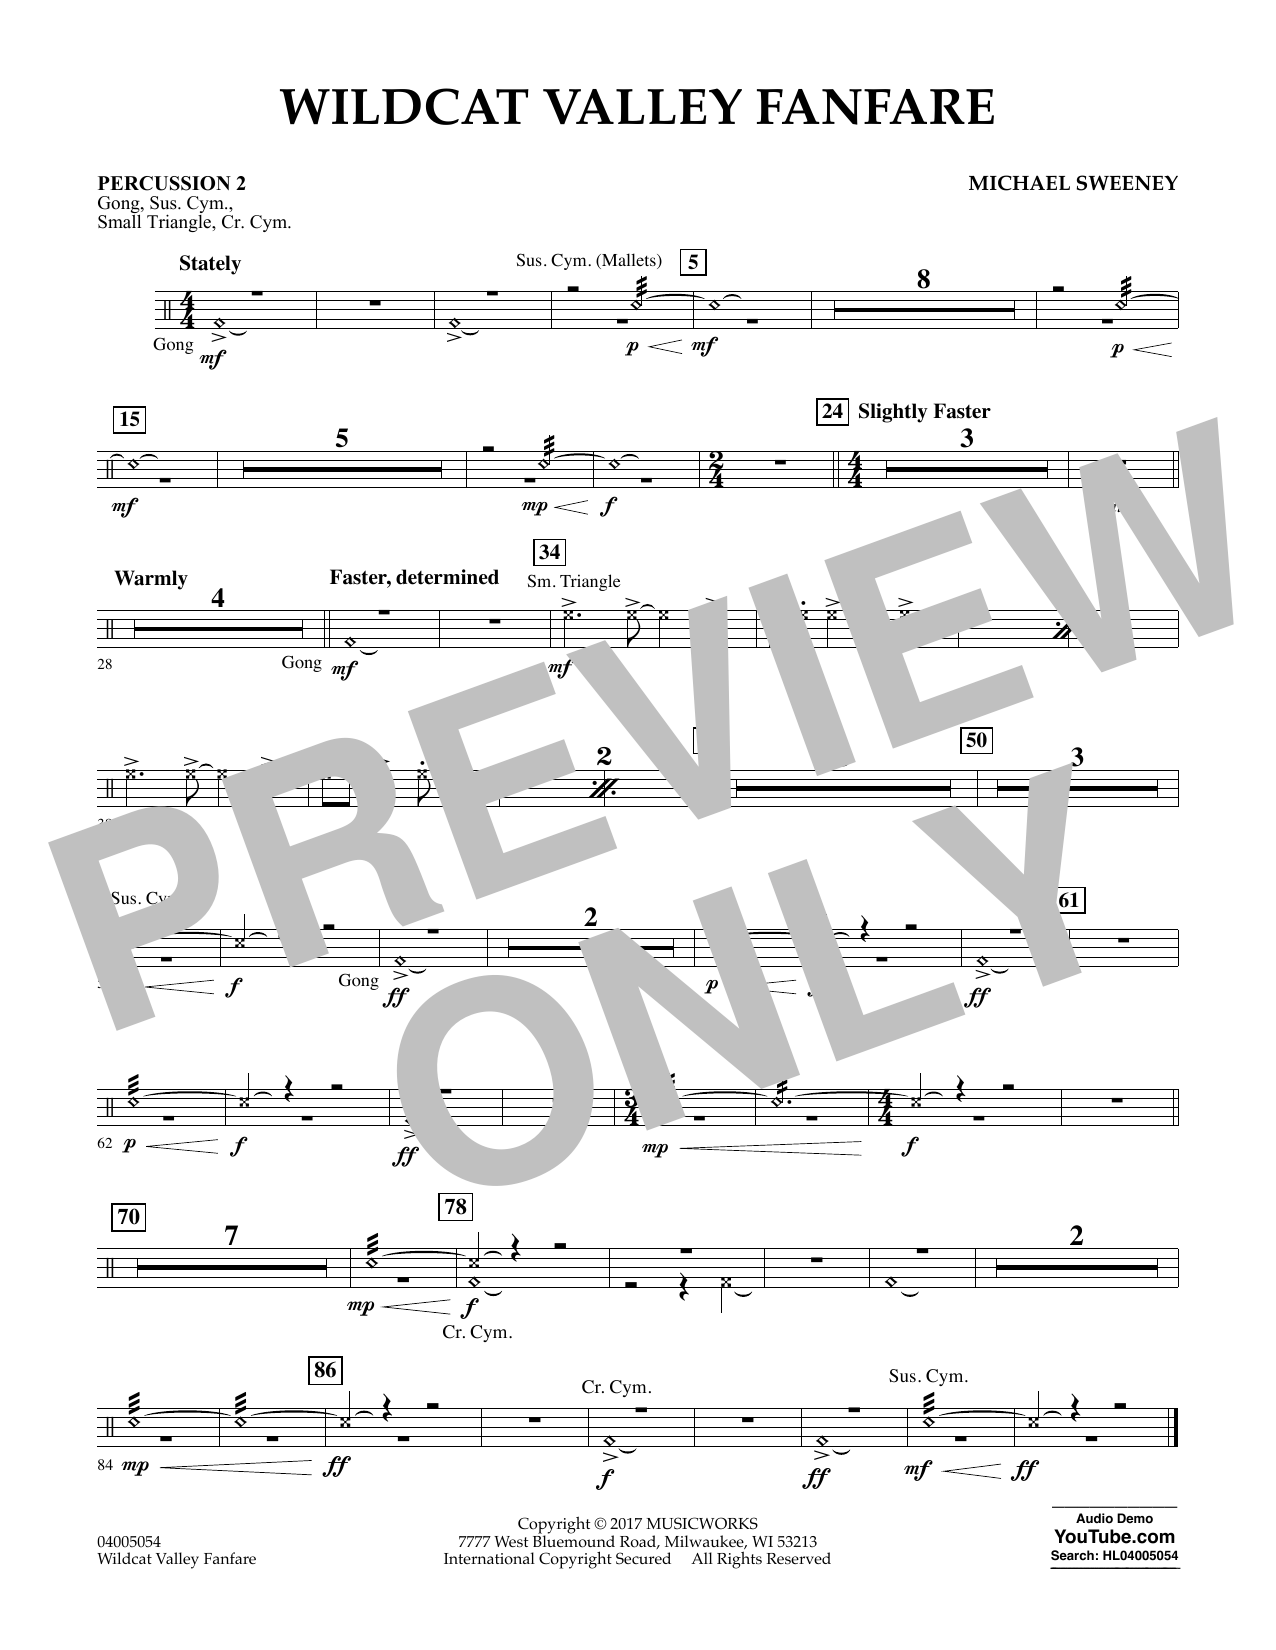 Michael Sweeney Wildcat Valley Fanfare - Percussion 2 sheet music notes and chords. Download Printable PDF.